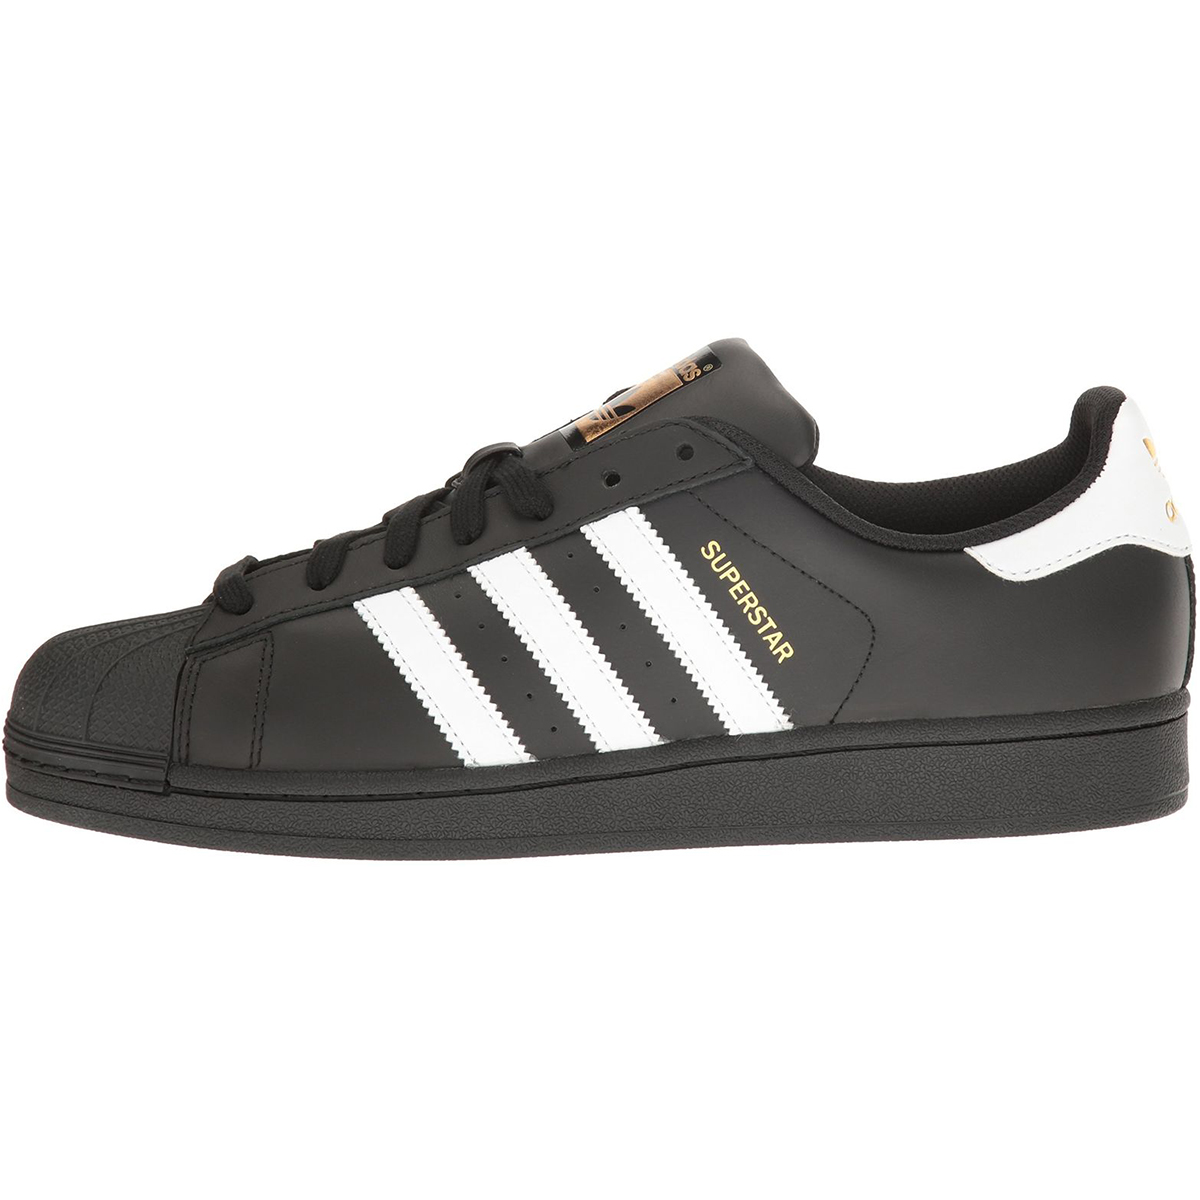 d09acf66d ... cheapest adidas superstar foundation rubber shell toe shoes 9 black  white 862b8 90123